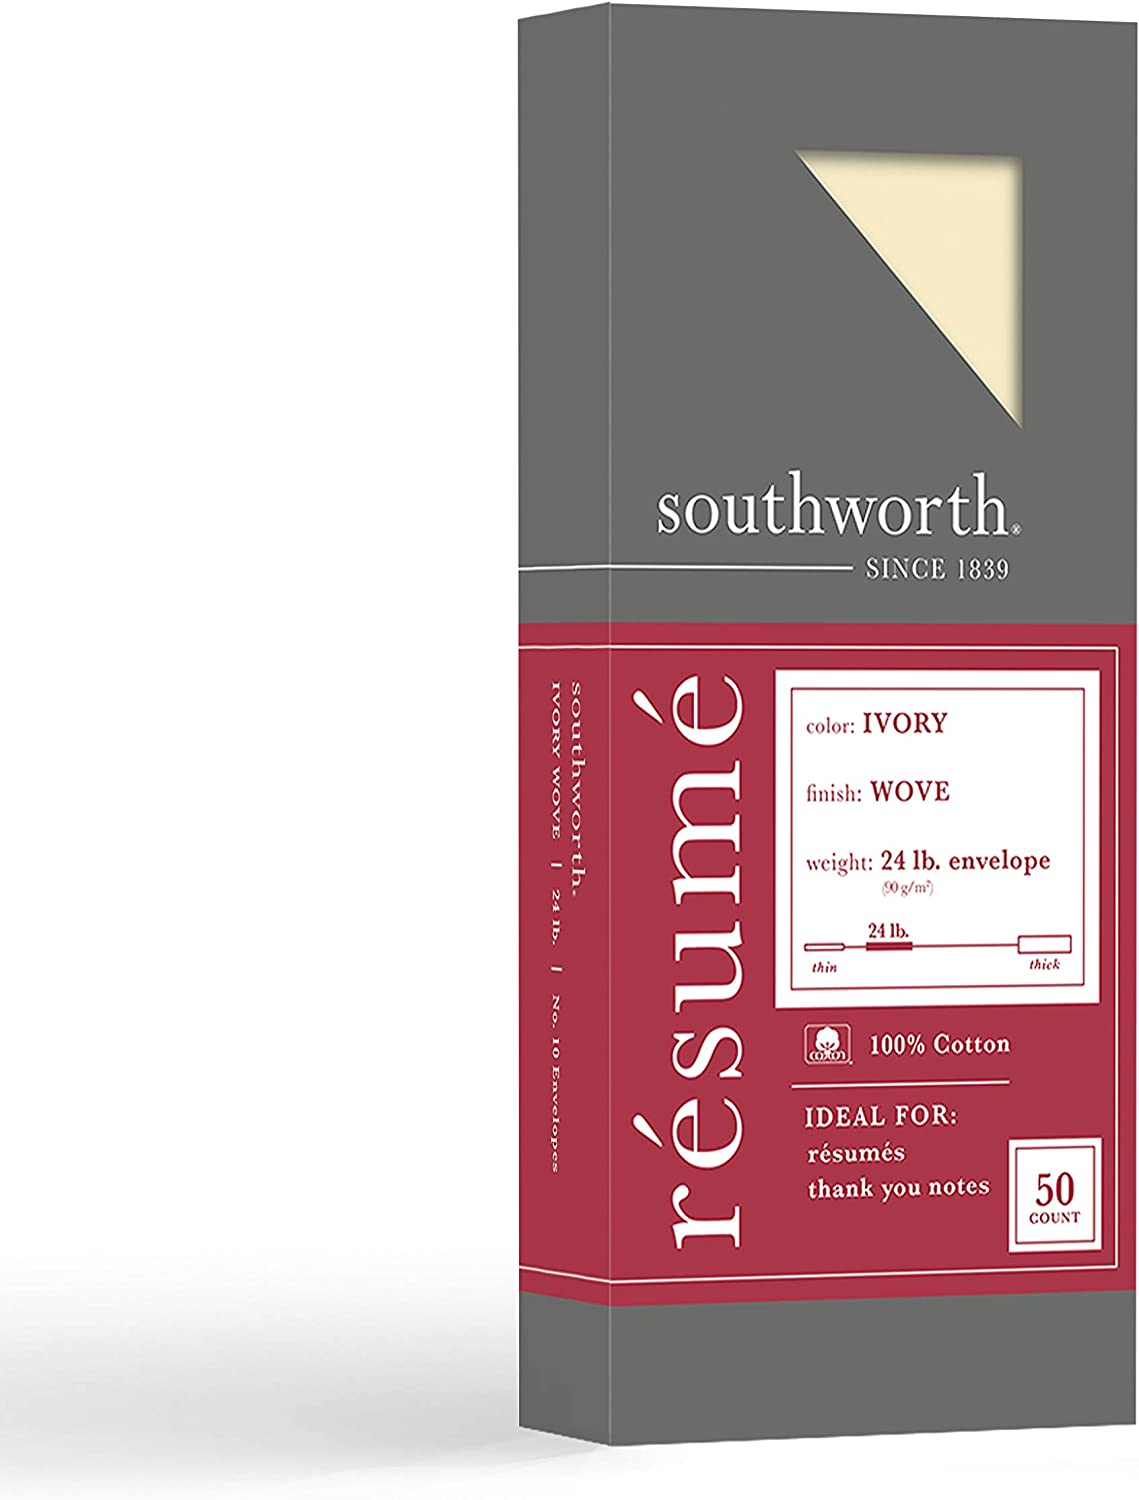 """Southworth 100% Cotton Résumé #10 Envelopes, 4.125"""" x 9.5"""", 24 lb/90 GSM, Wove Finish, Ivory, 50 Count - Packaging May Vary (R14I-10L)"""